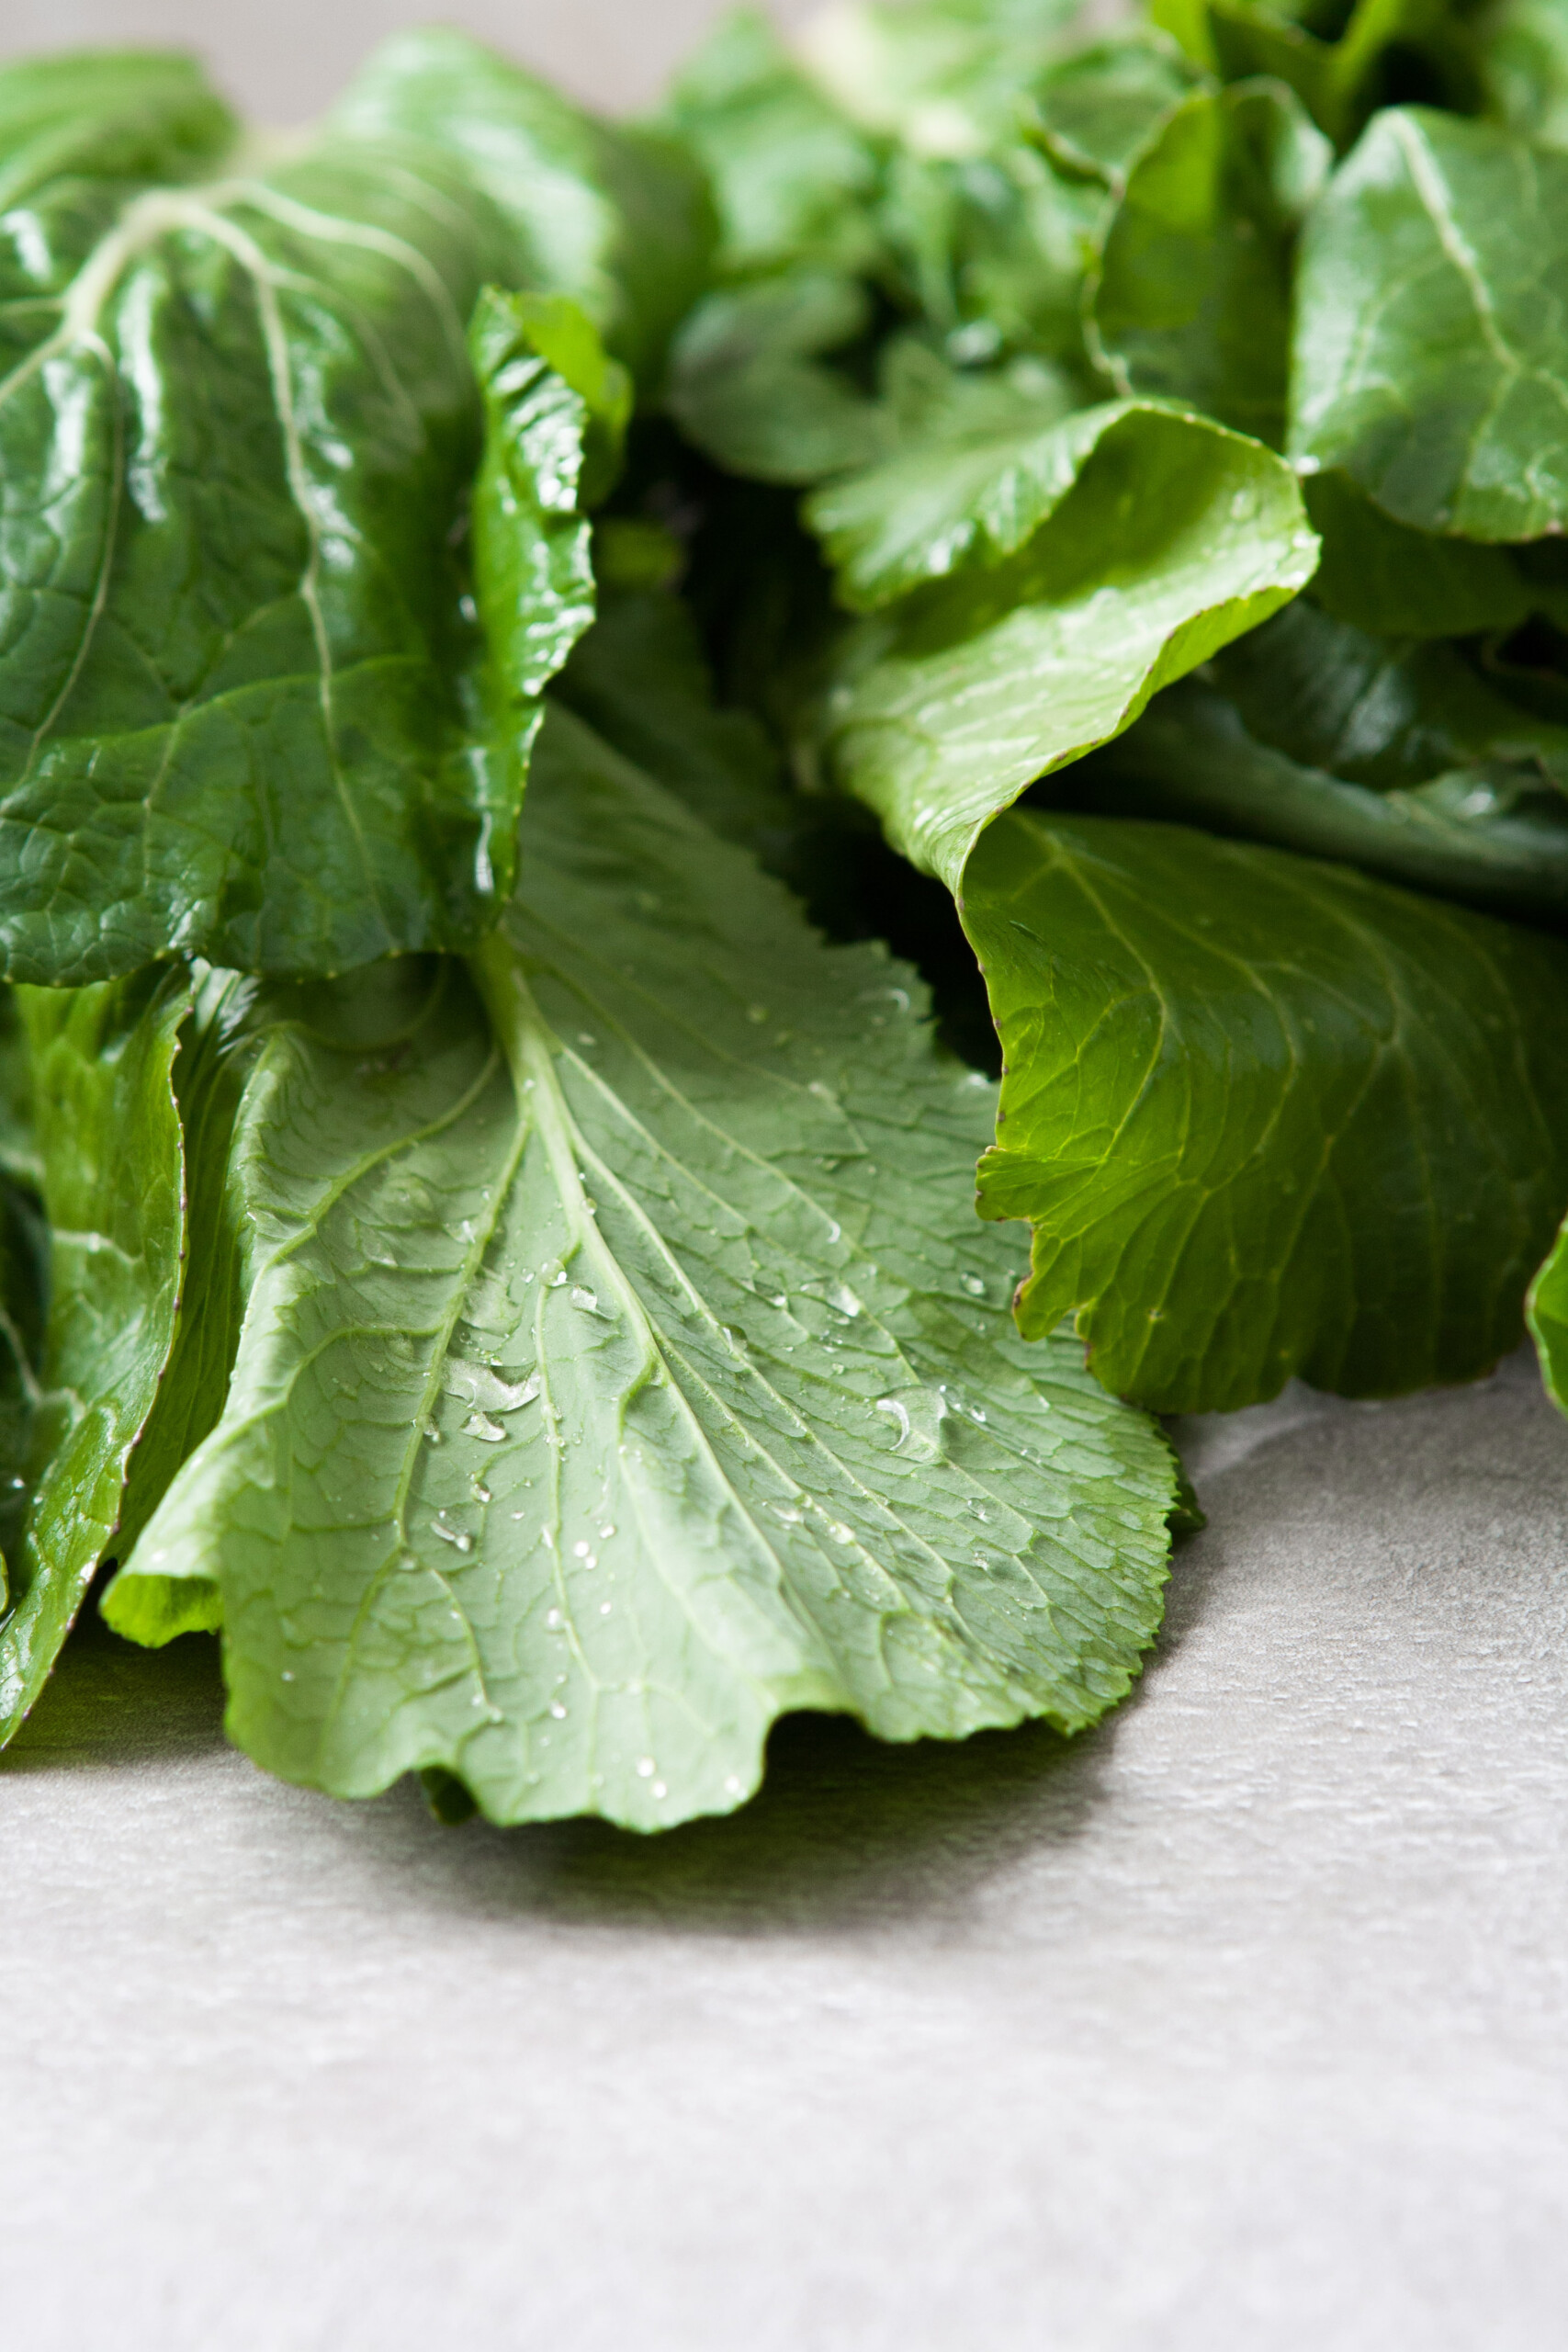 turnip greens with water droplets